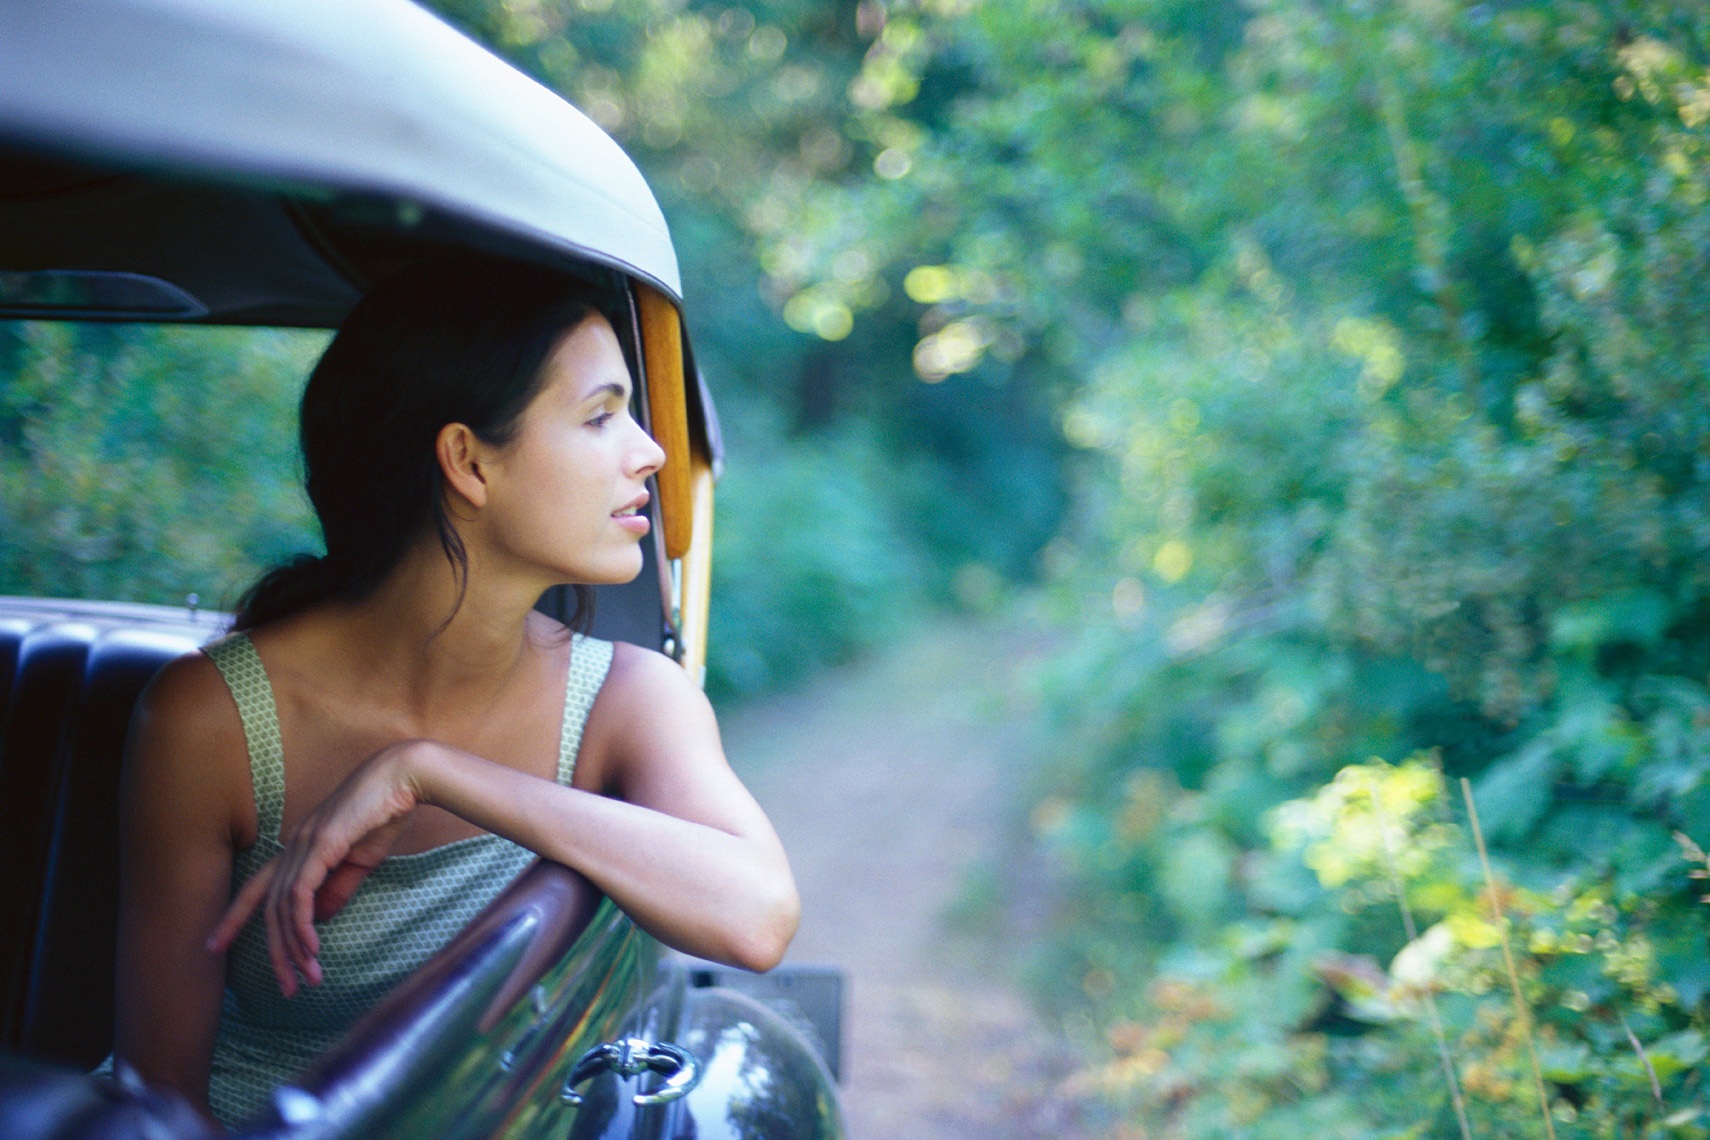 Woman in green dress looking out the window of and old Ford car on a country road San Francisco lifestyle photographer